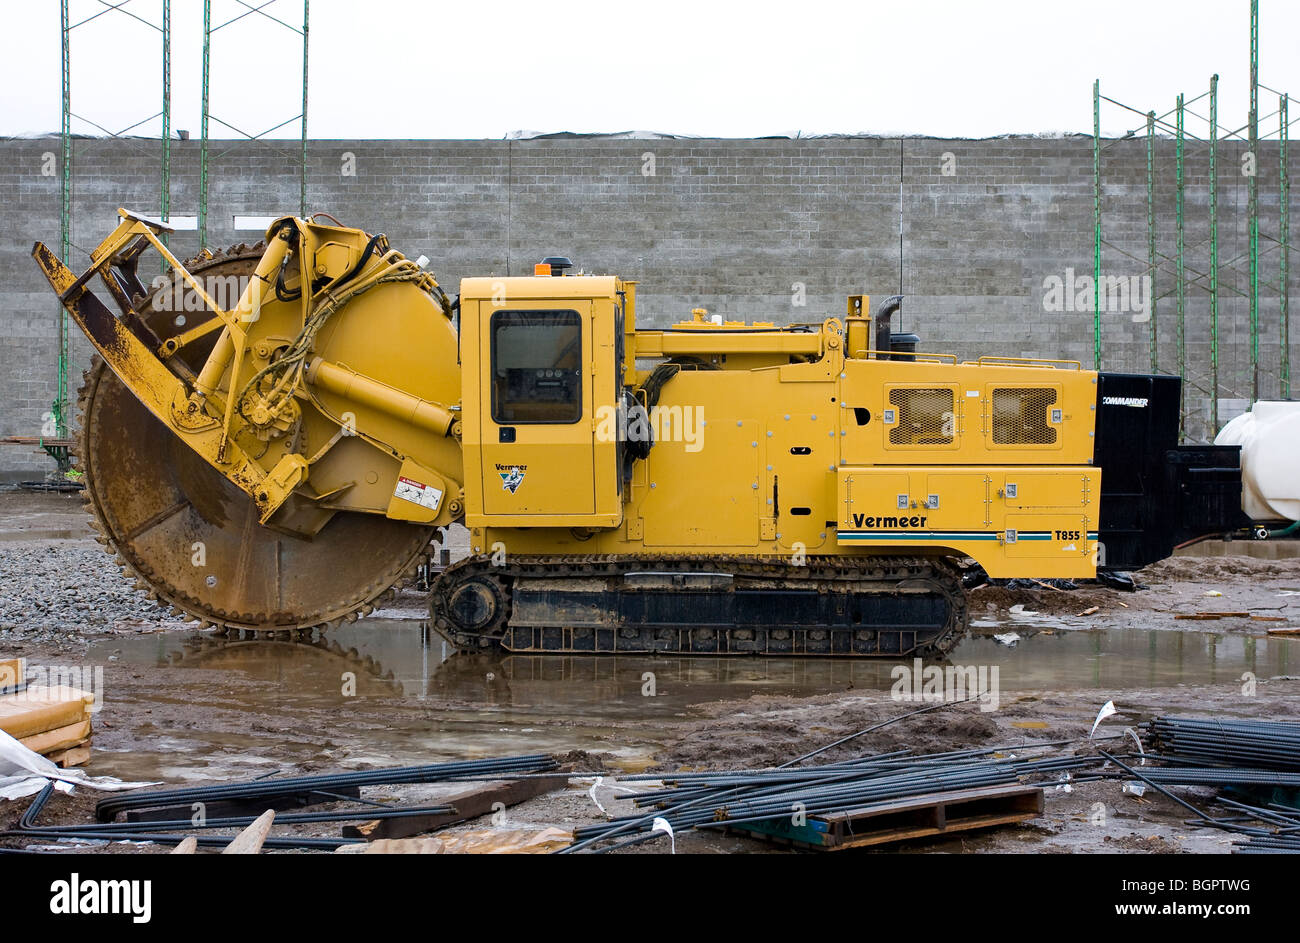 Vermeer trancheuse sur chantier de construction. Photo Stock